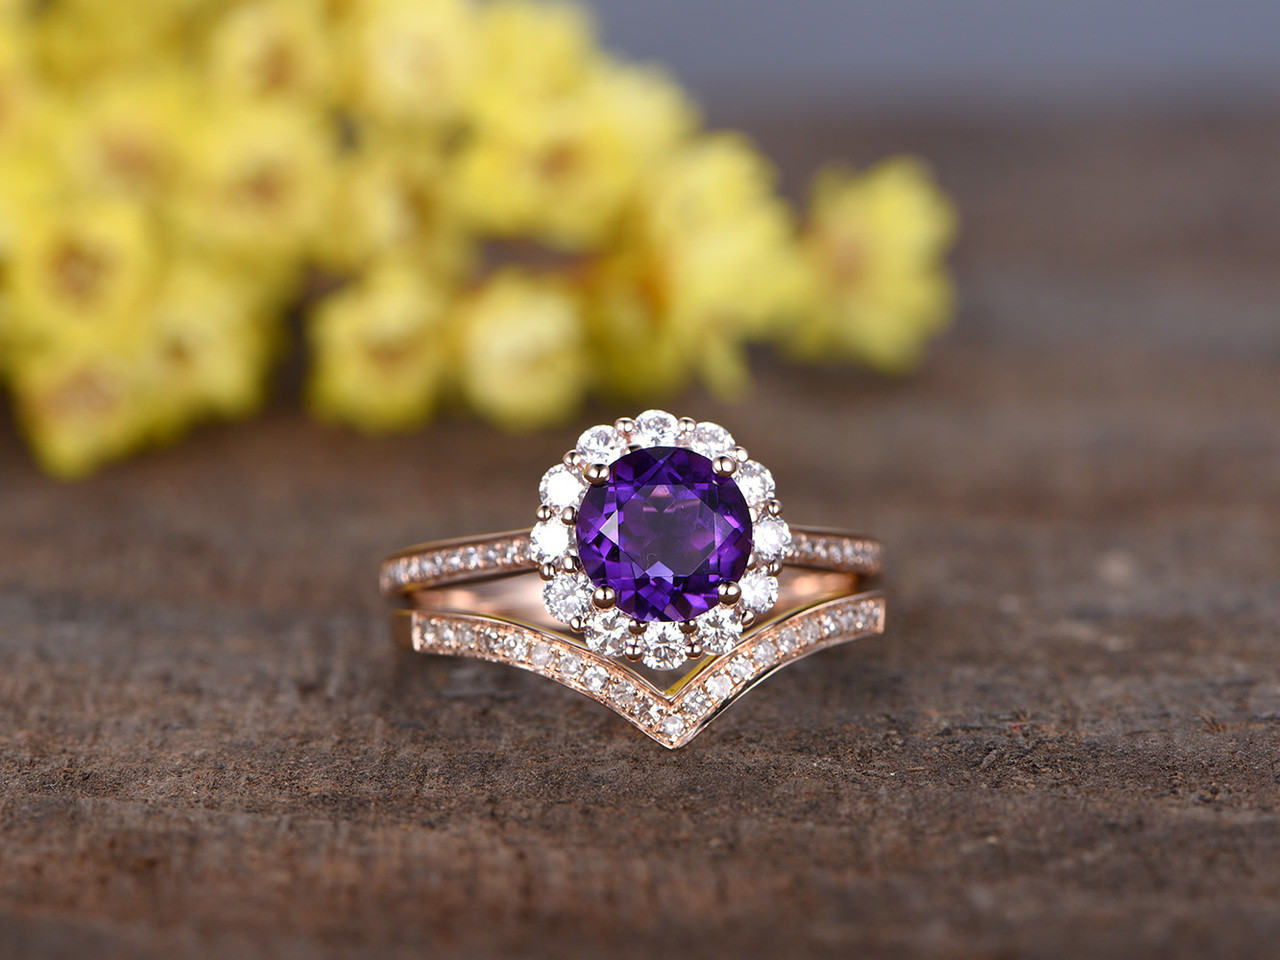 12 Carat Round Amethyst Wedding Ring Set 14k Rose Gold Flower